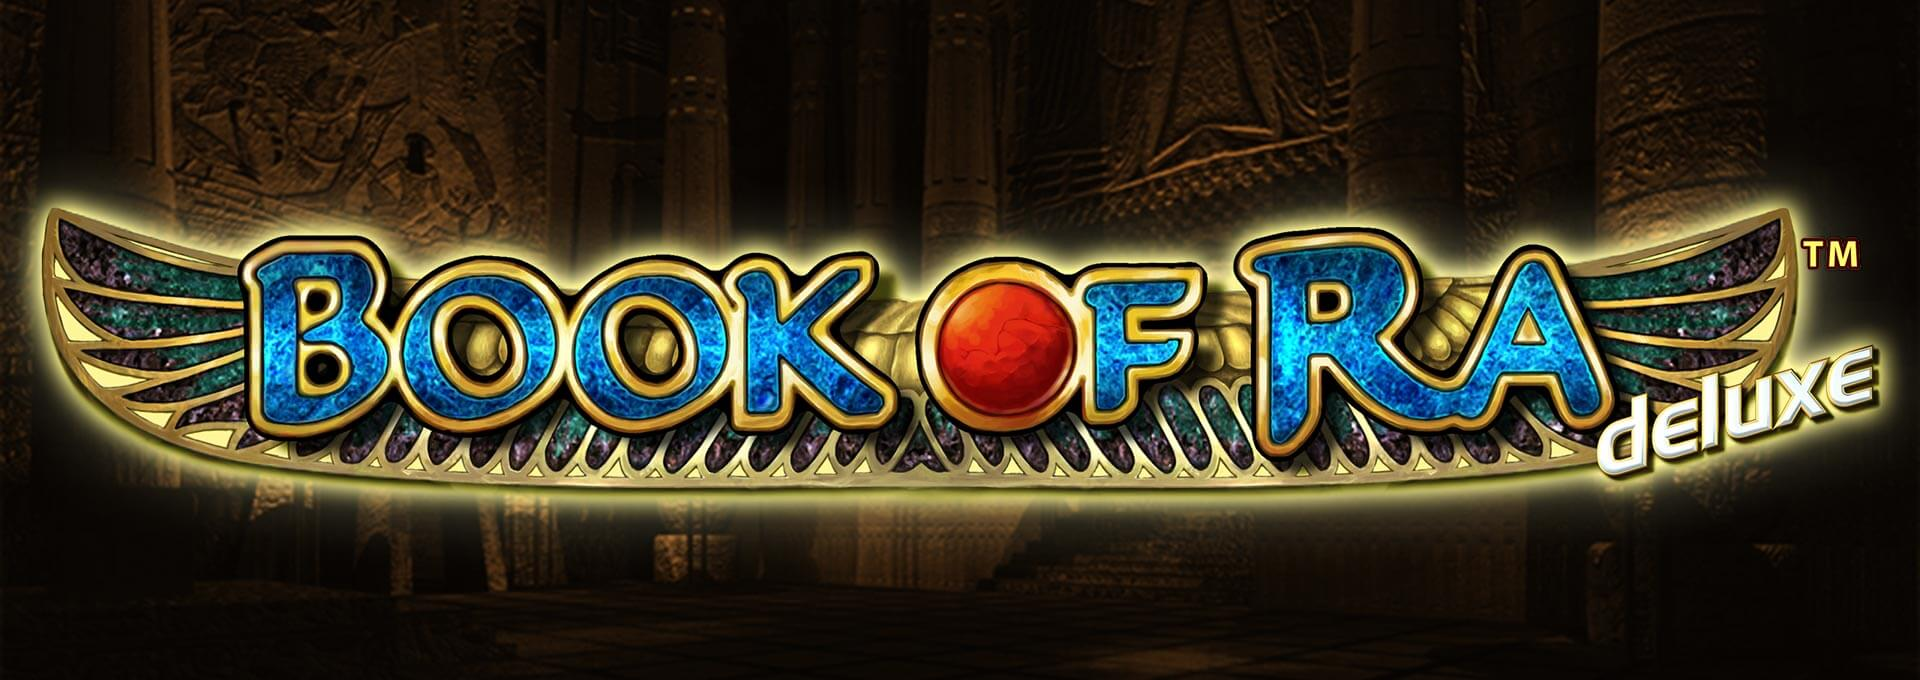 free online slots no deposit free slot games book of ra